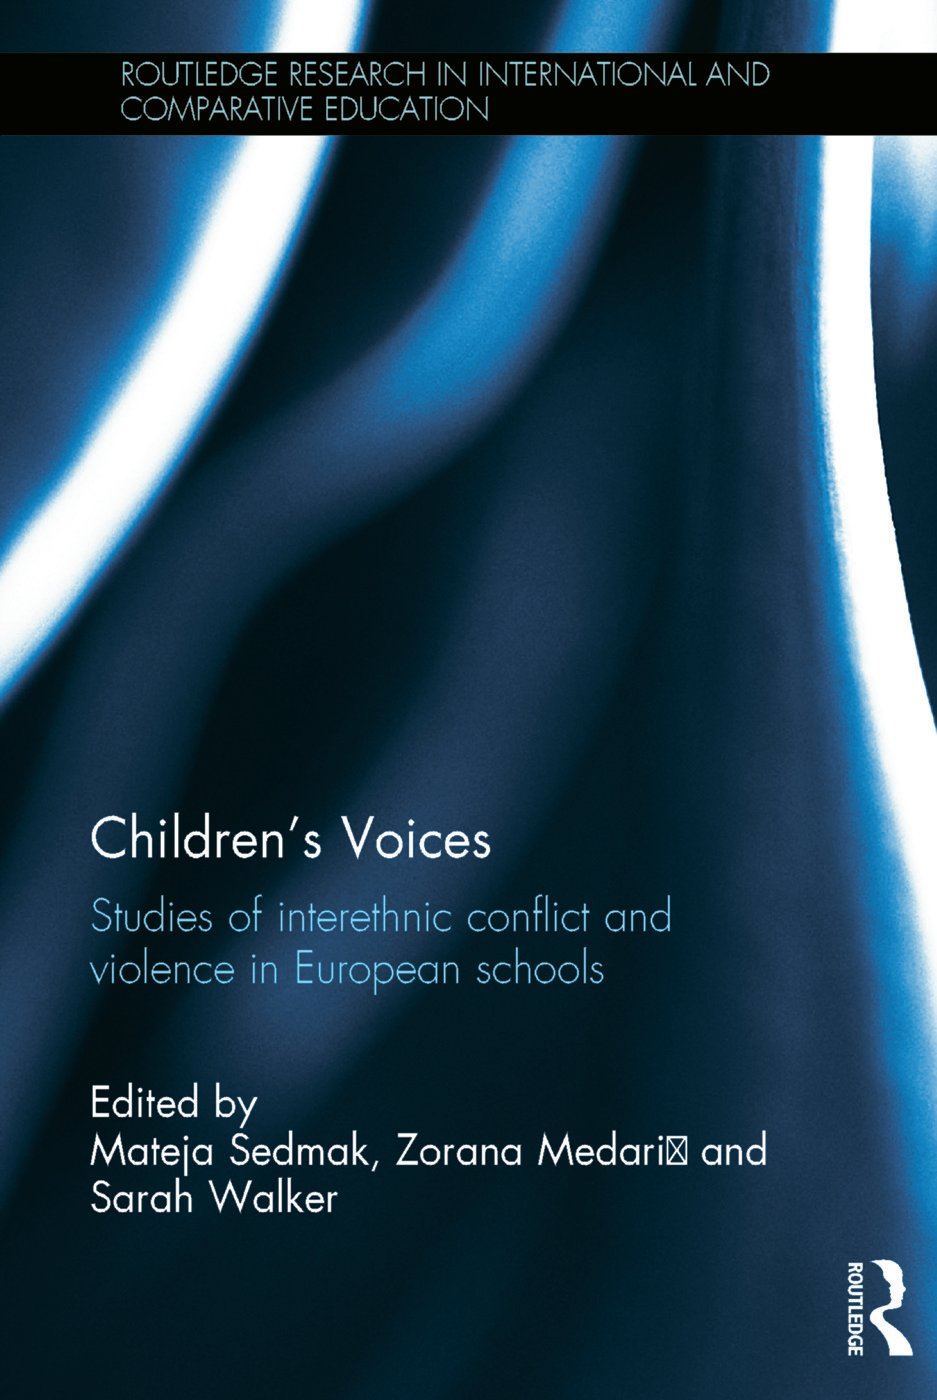 Children's Voices: Studies of interethnic conflict and violence in European schools: 1st Edition (Hardback) book cover